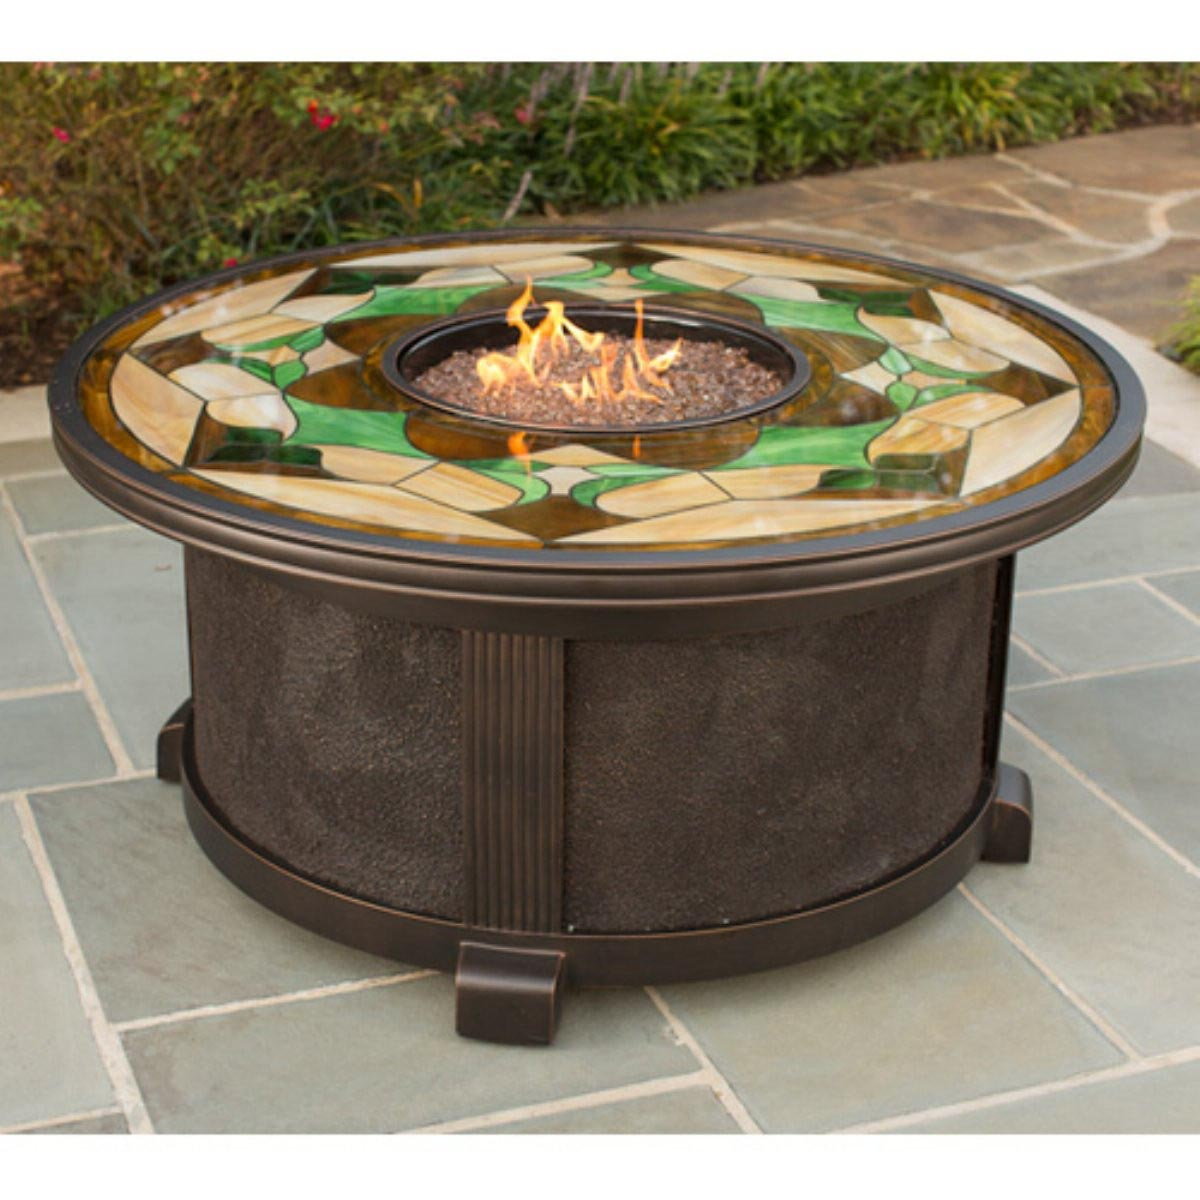 Fire Pit Made from Truck Rims